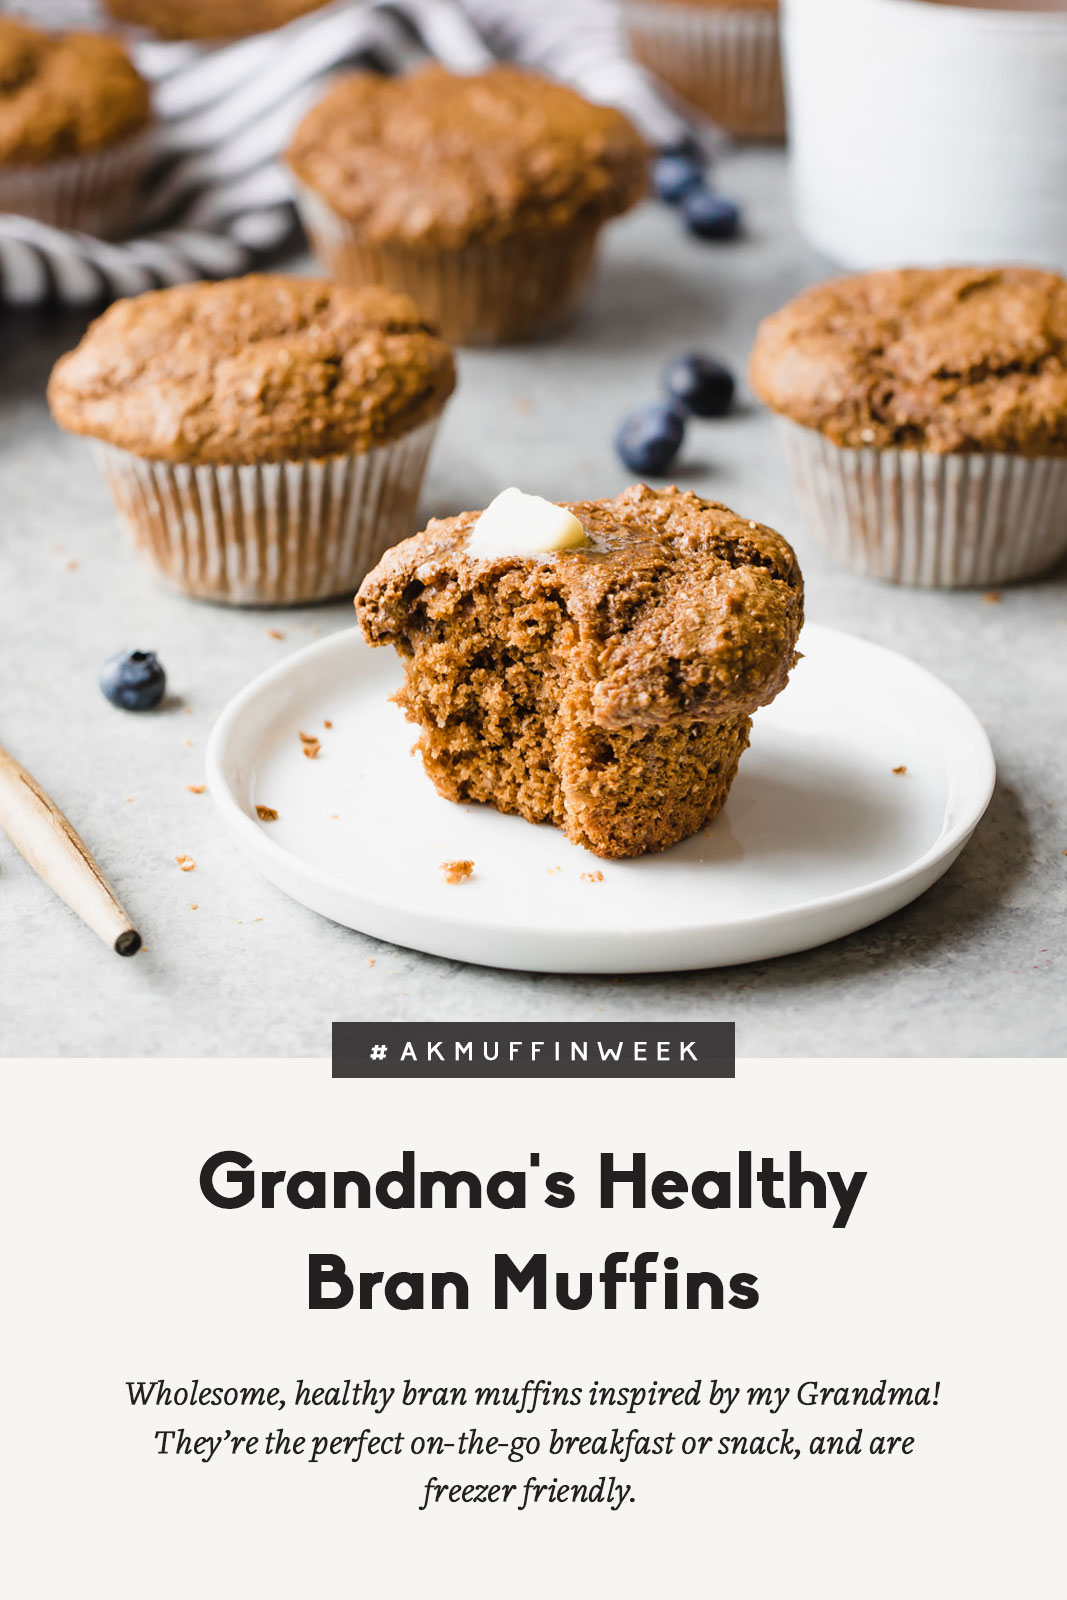 healthy bran muffin on a plate with blueberries and muffins on a grey board